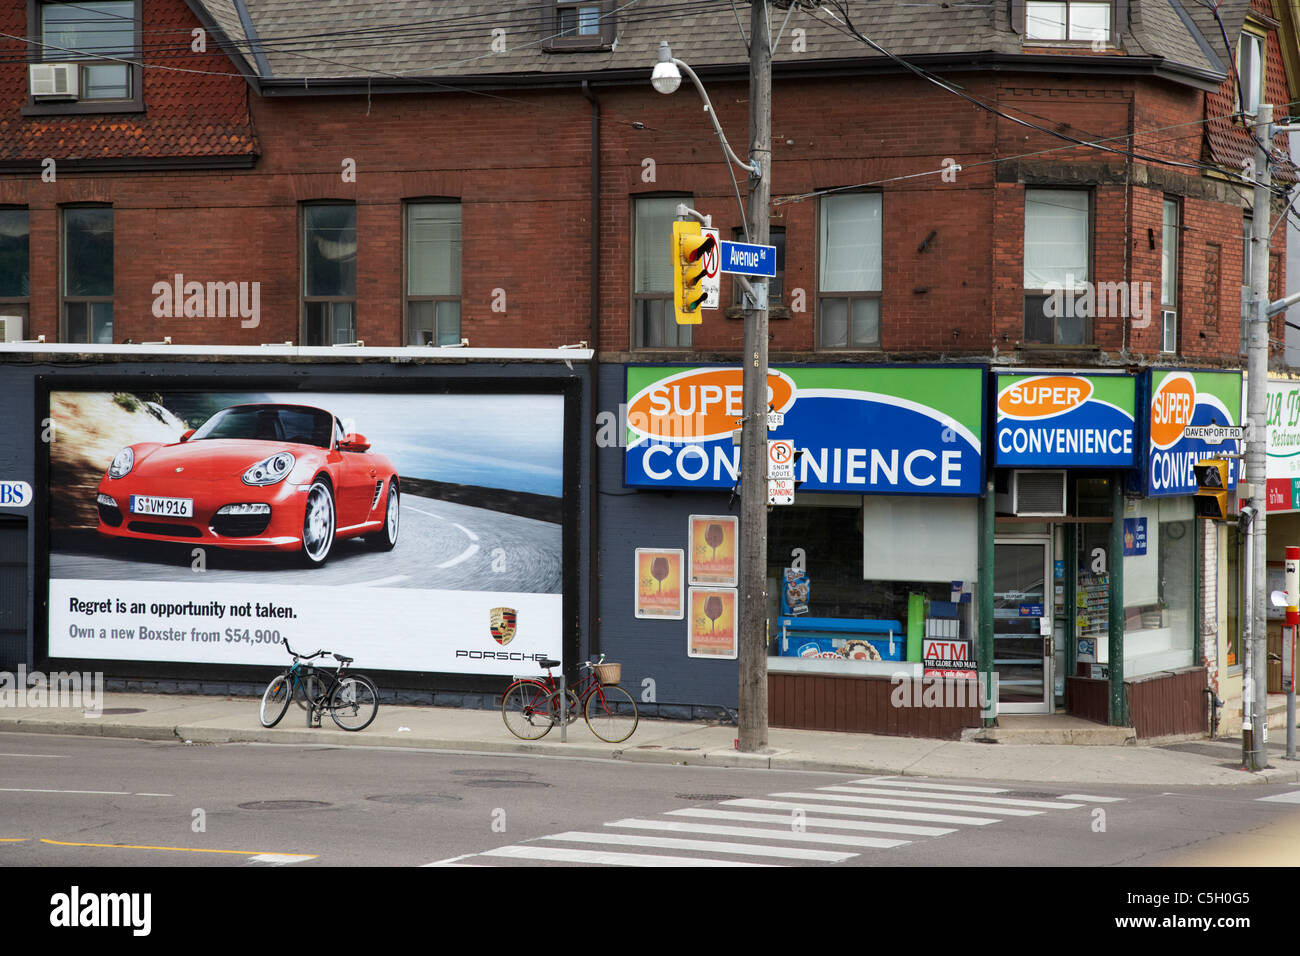 contrasting ad for exclusive luxury car next to corner convenience store toronto ontario canada - Stock Image